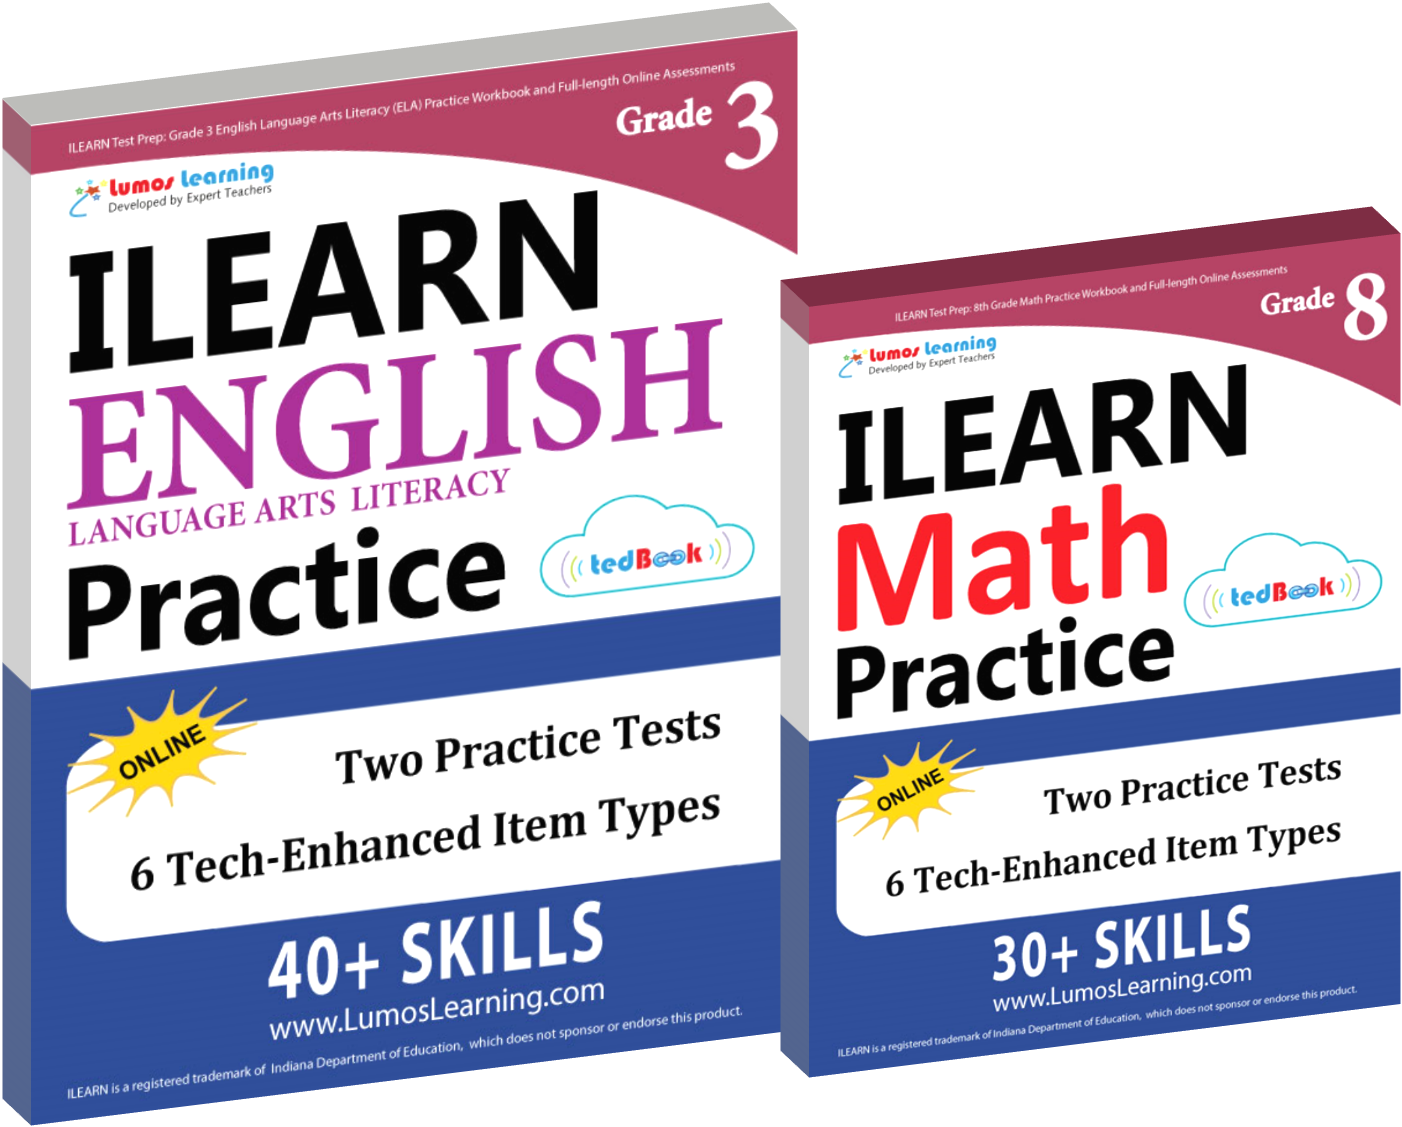 Printed Practice Workbooks and Online Practice Tests for ILEARN